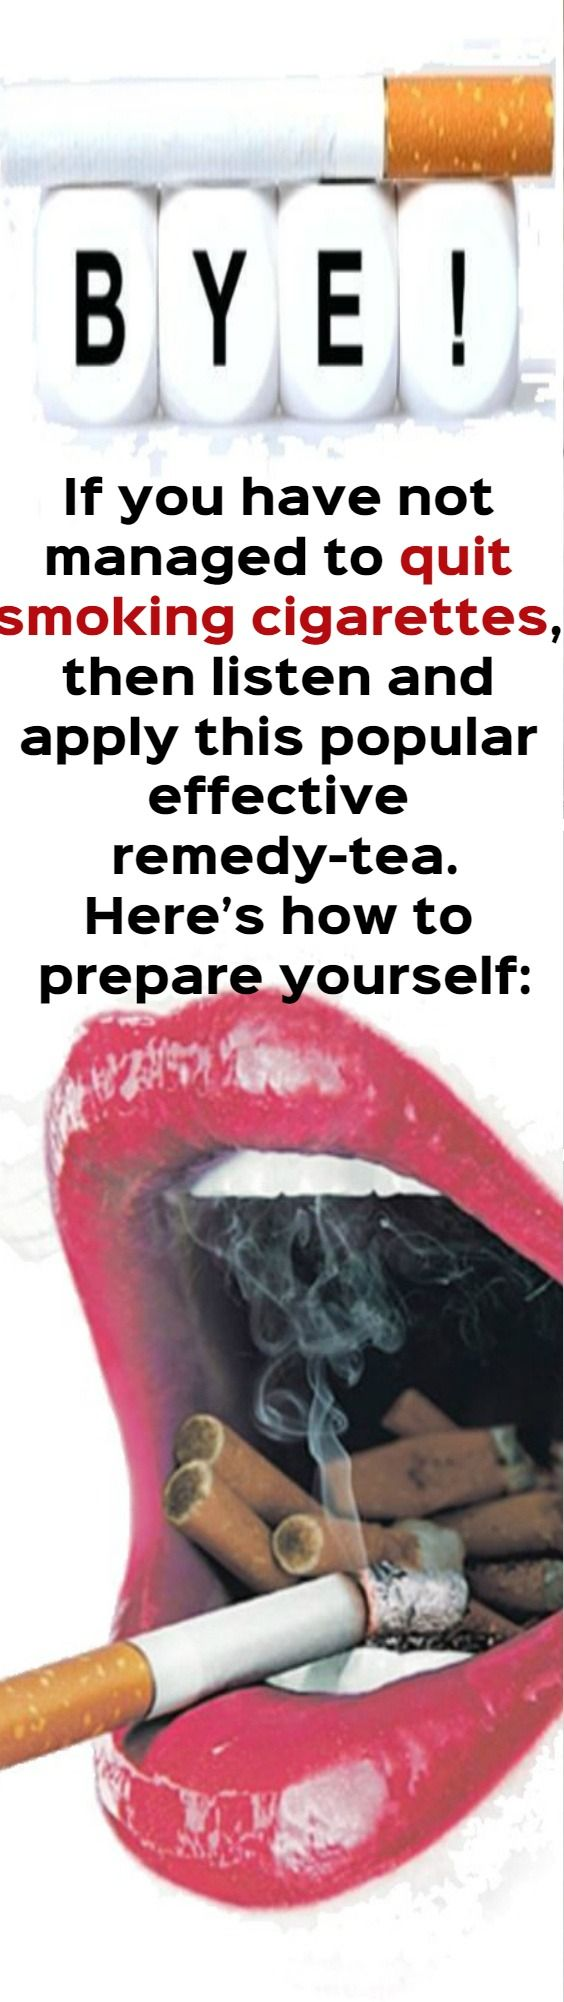 If you have not managed to quit smoking cigarettes, then listen and apply this popular effective remedy- tea:  Here's how to prepare yourself: